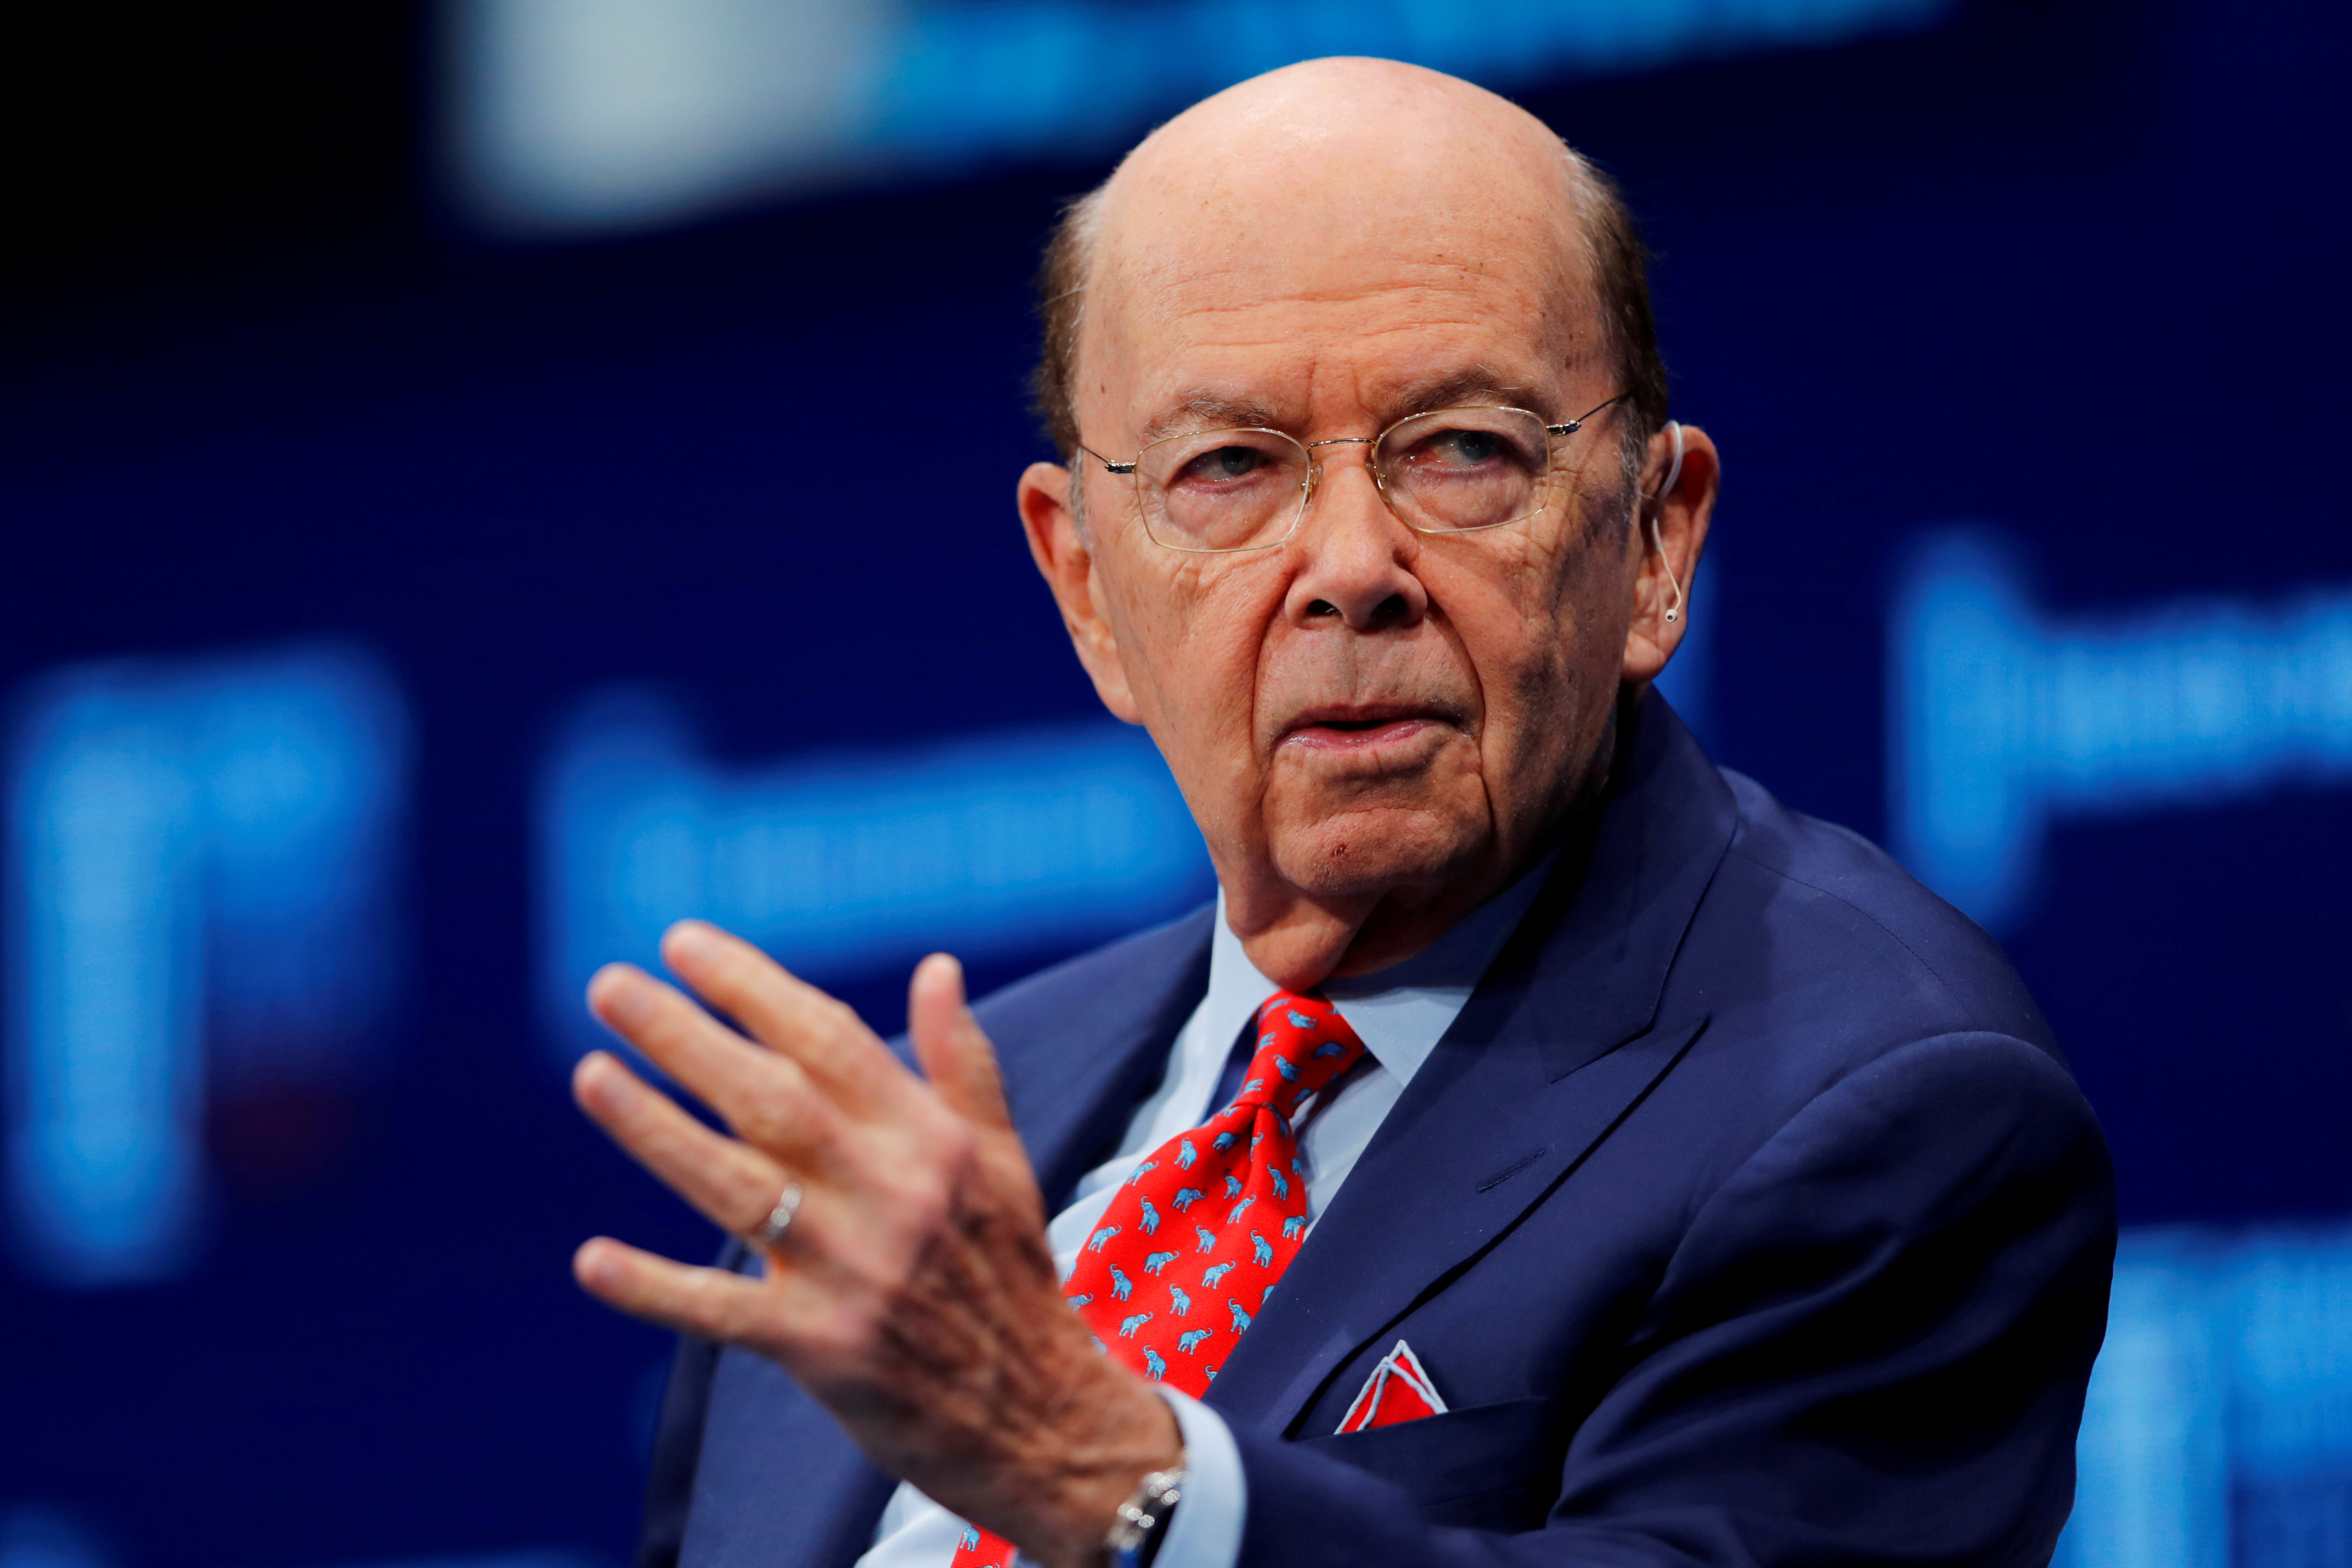 Wilbur L. Ross Jr., Secretary, U.S. Department of Commerce, speaks at the Milken Institute 21st Global Conference in Beverly Hills, California, U.S., May 1, 2018. REUTERS/Mike Blake